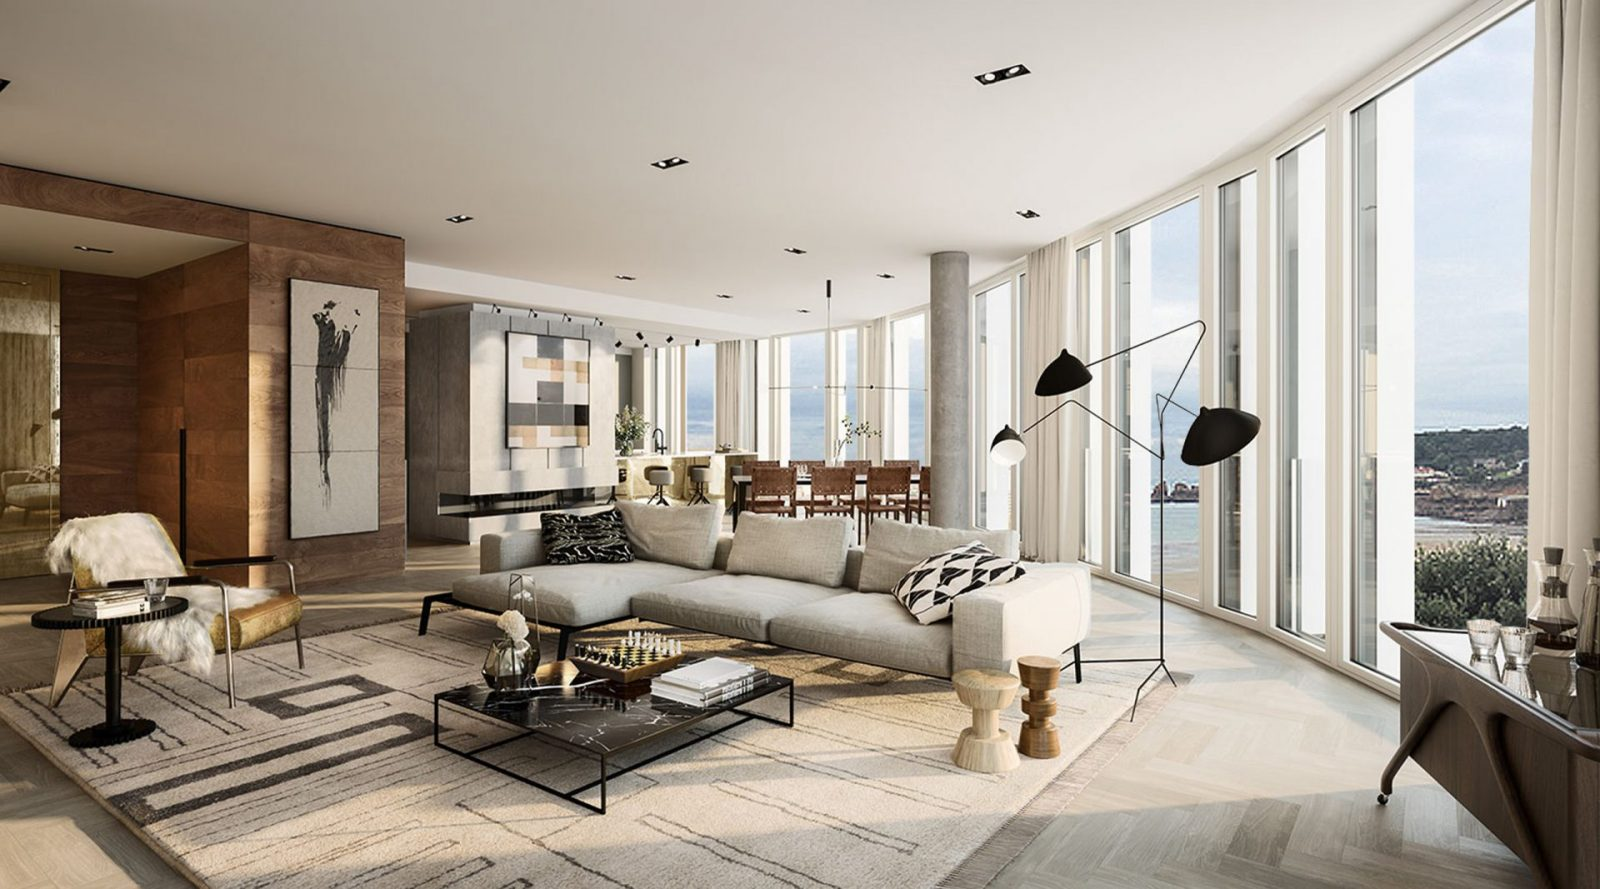 interiors st brelades bay modern hotel apartment building architecture architects jersey architects1 2